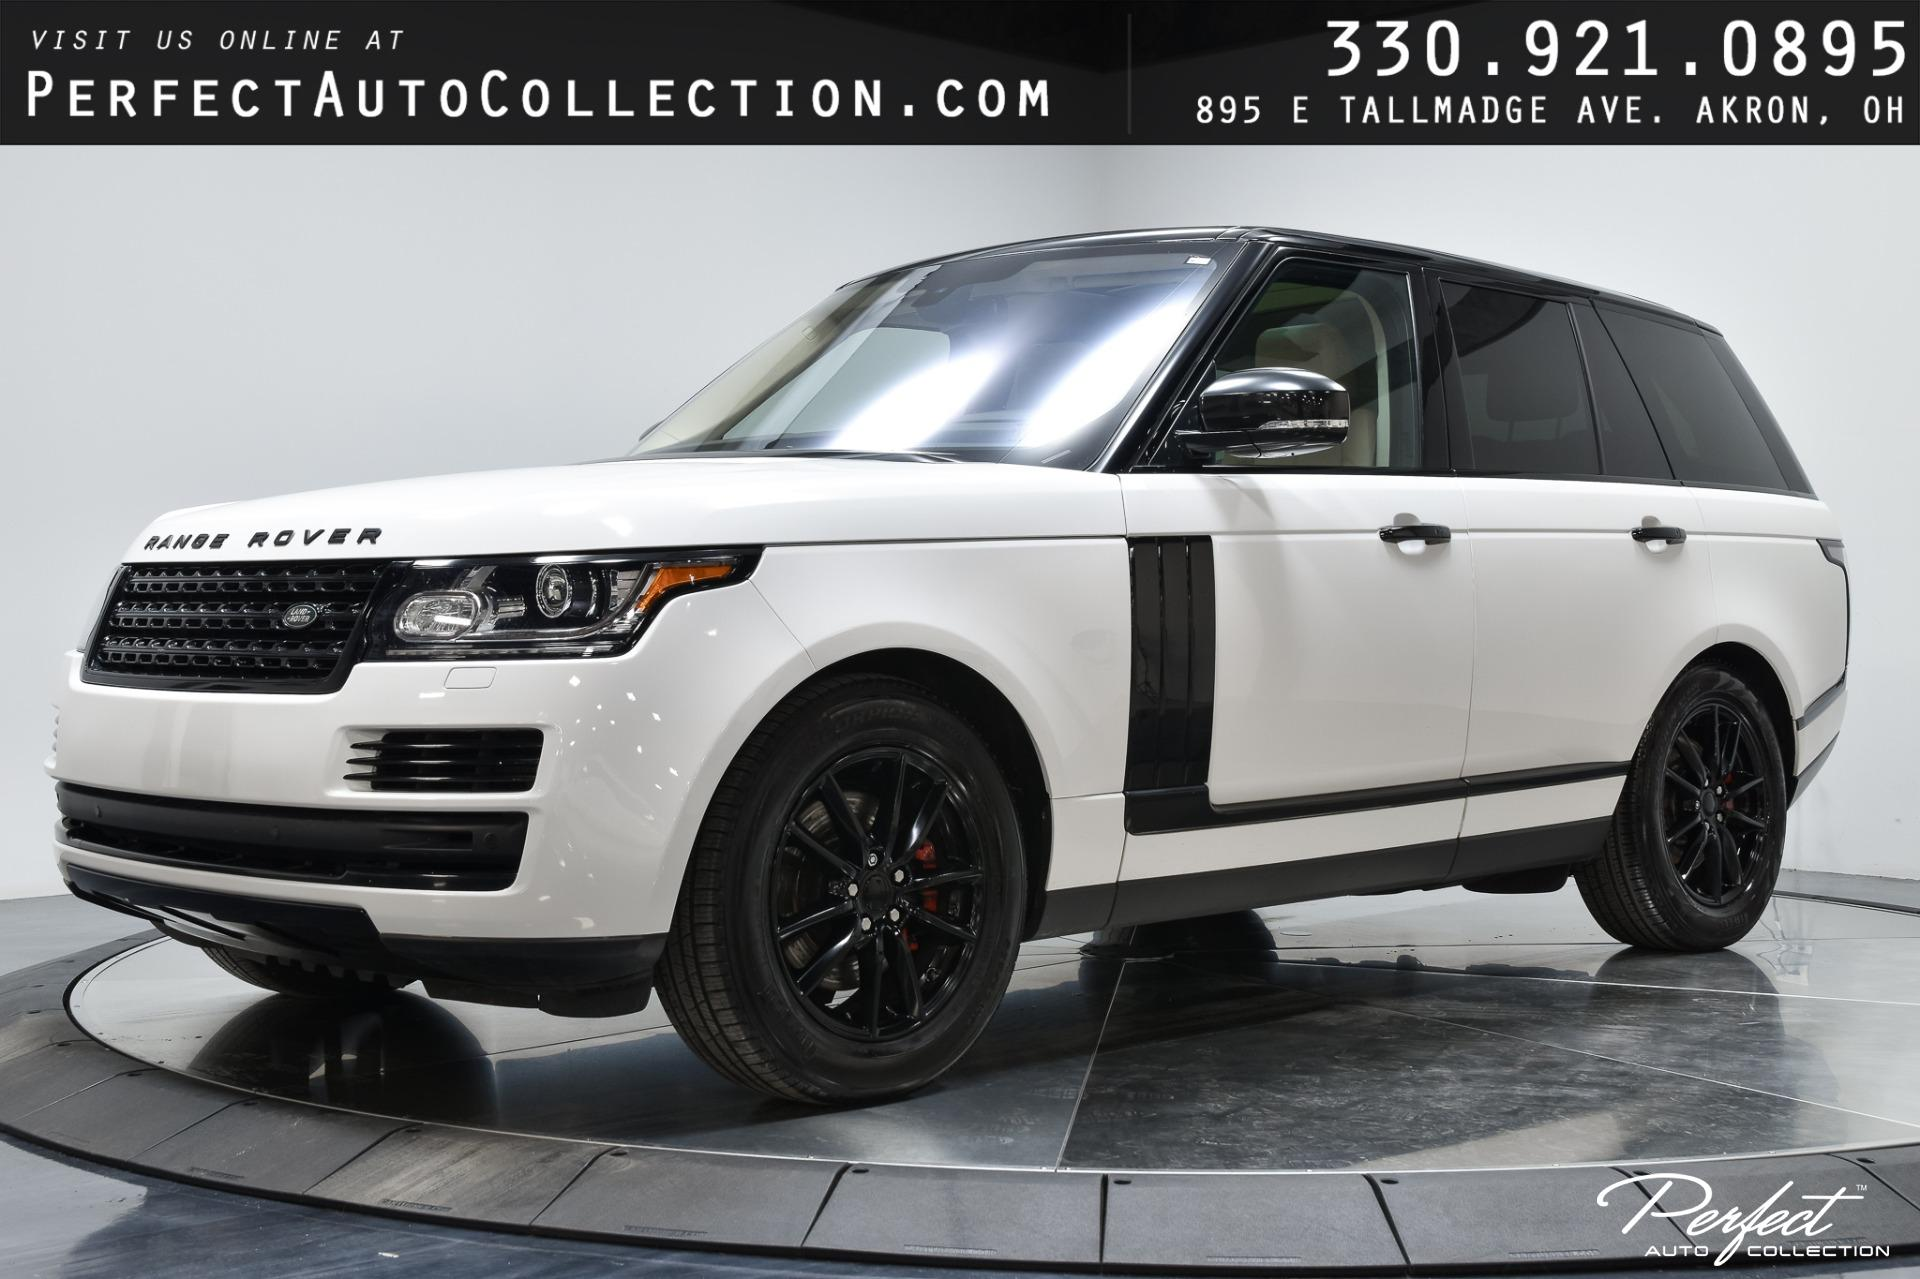 Used 2016 Land Rover Range Rover Td6 for sale $48,495 at Perfect Auto Collection in Akron OH 44310 1